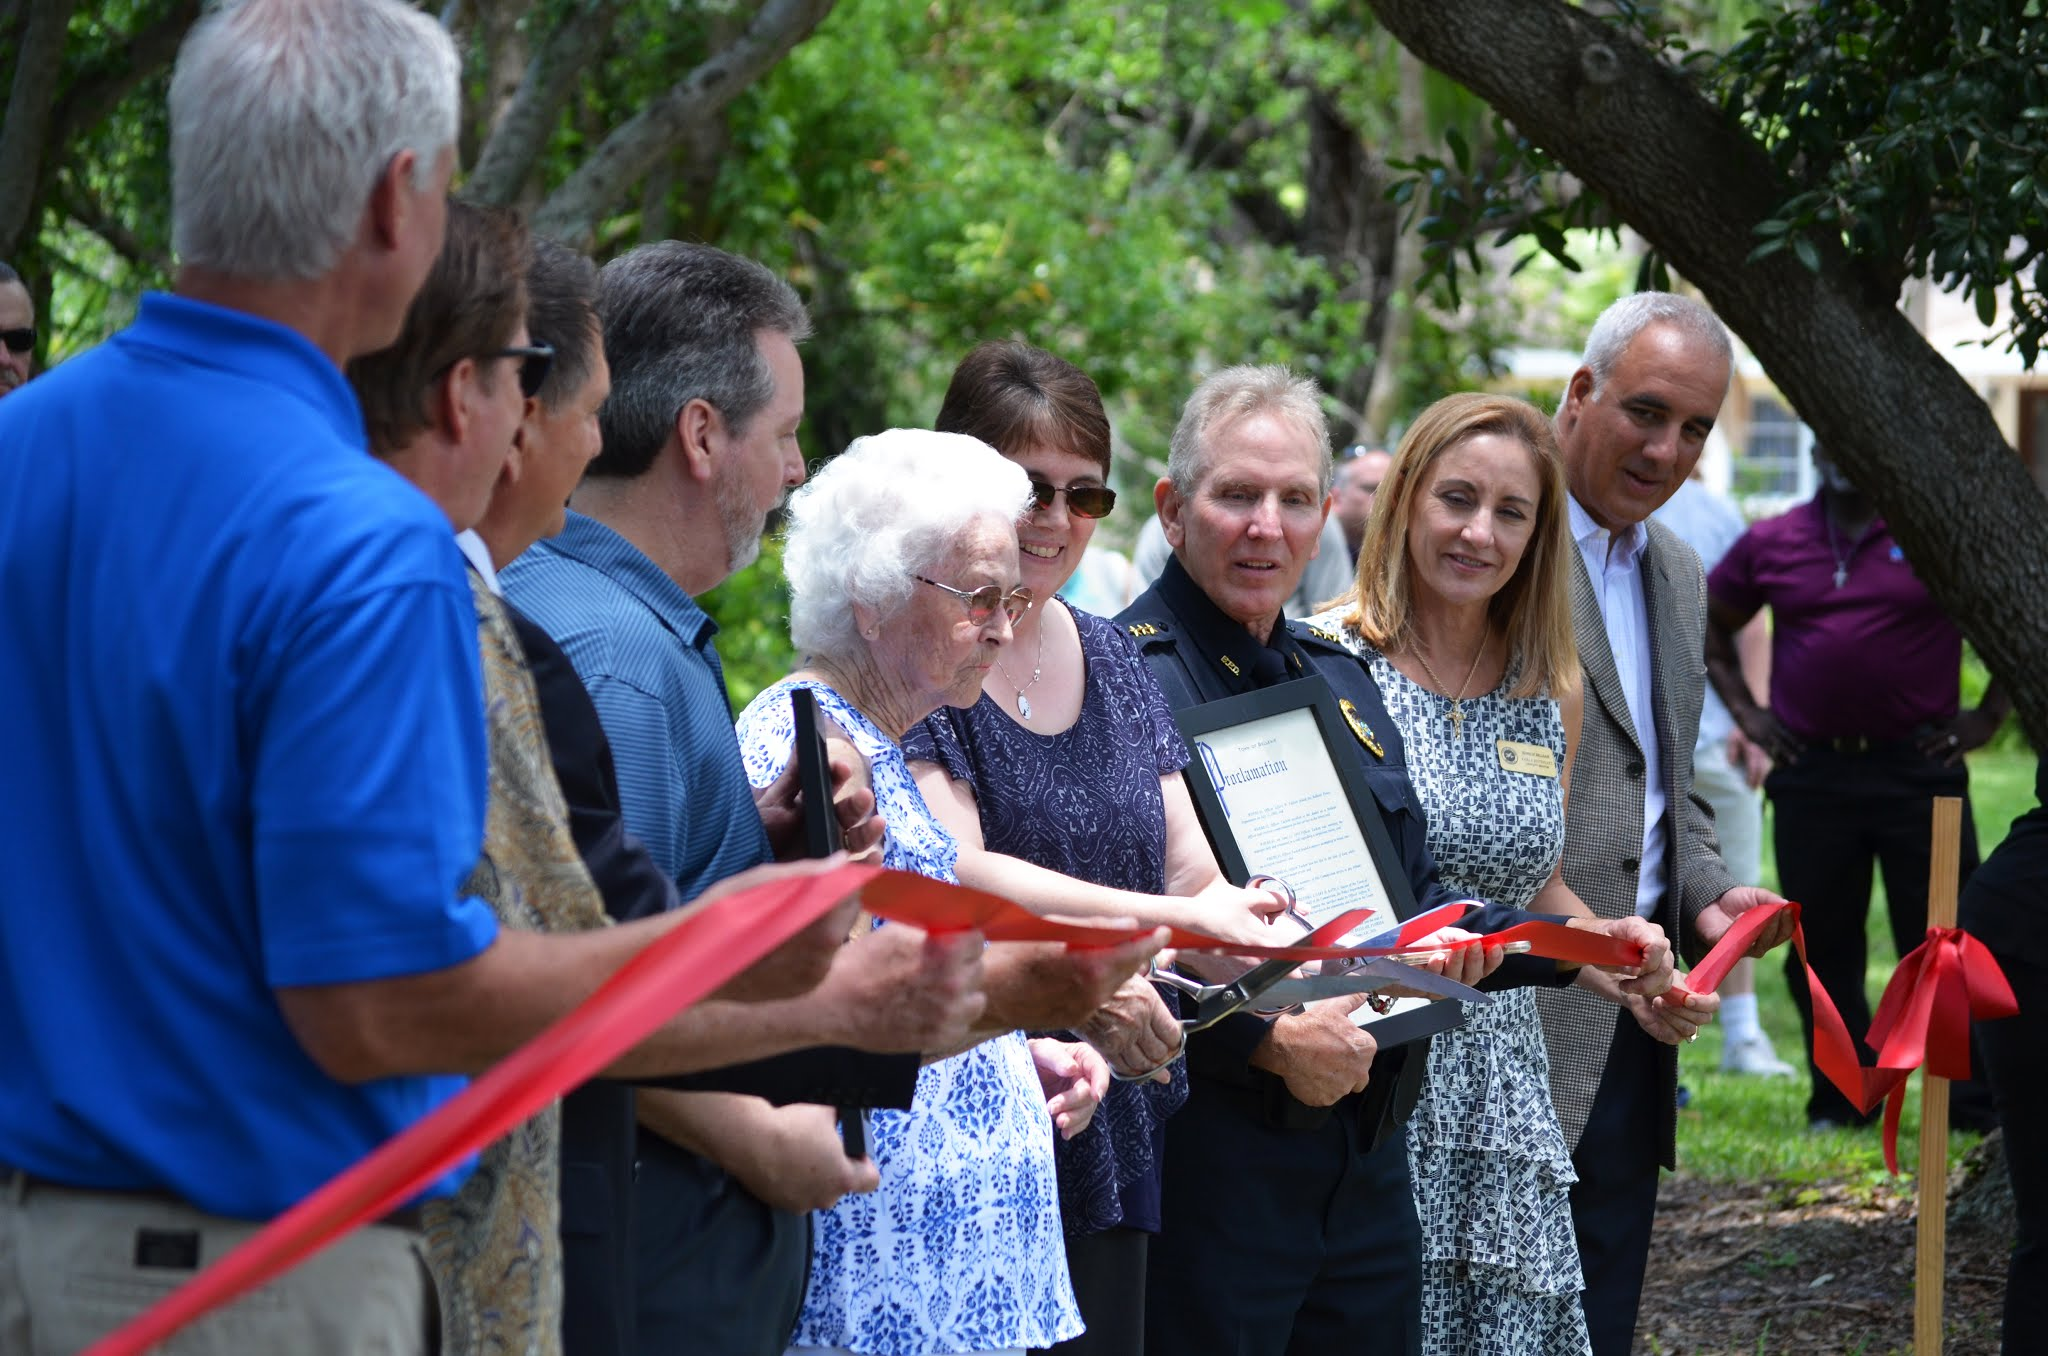 Town staff, Commissioners, and family of Officer Tackett cut a ribbon at Jeffery W. Tackett Park